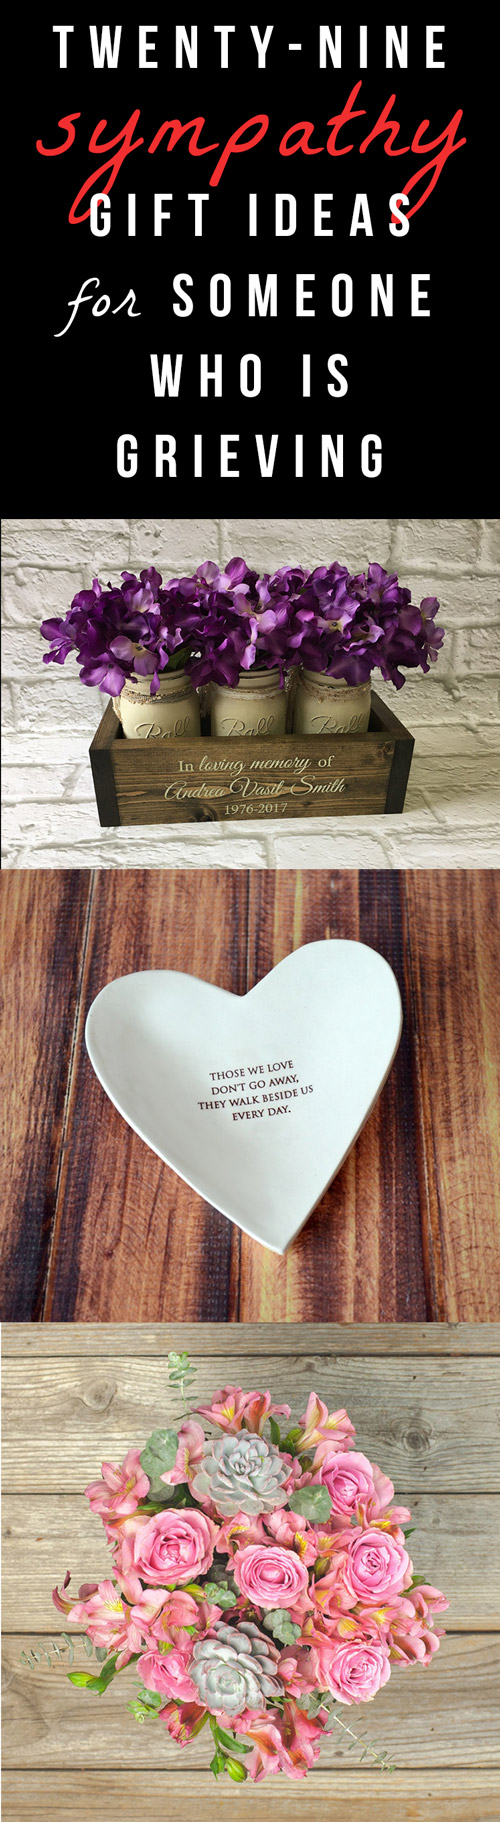 29 sympathy gifts for someone who is grieving » urns | online